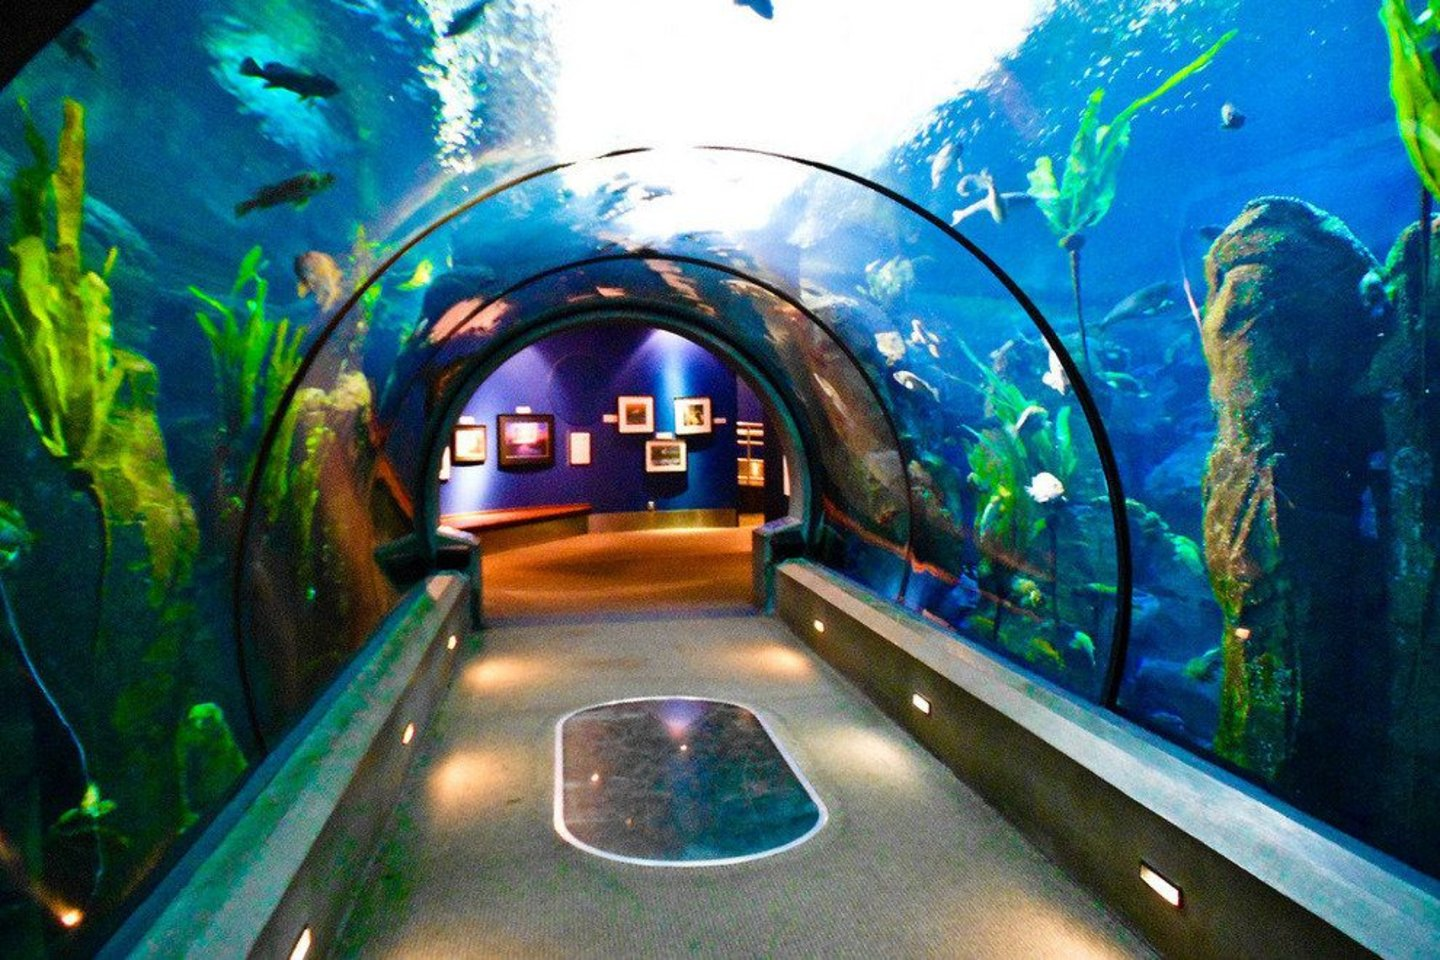 Visit the Oregon Coast Aquarium while in town.